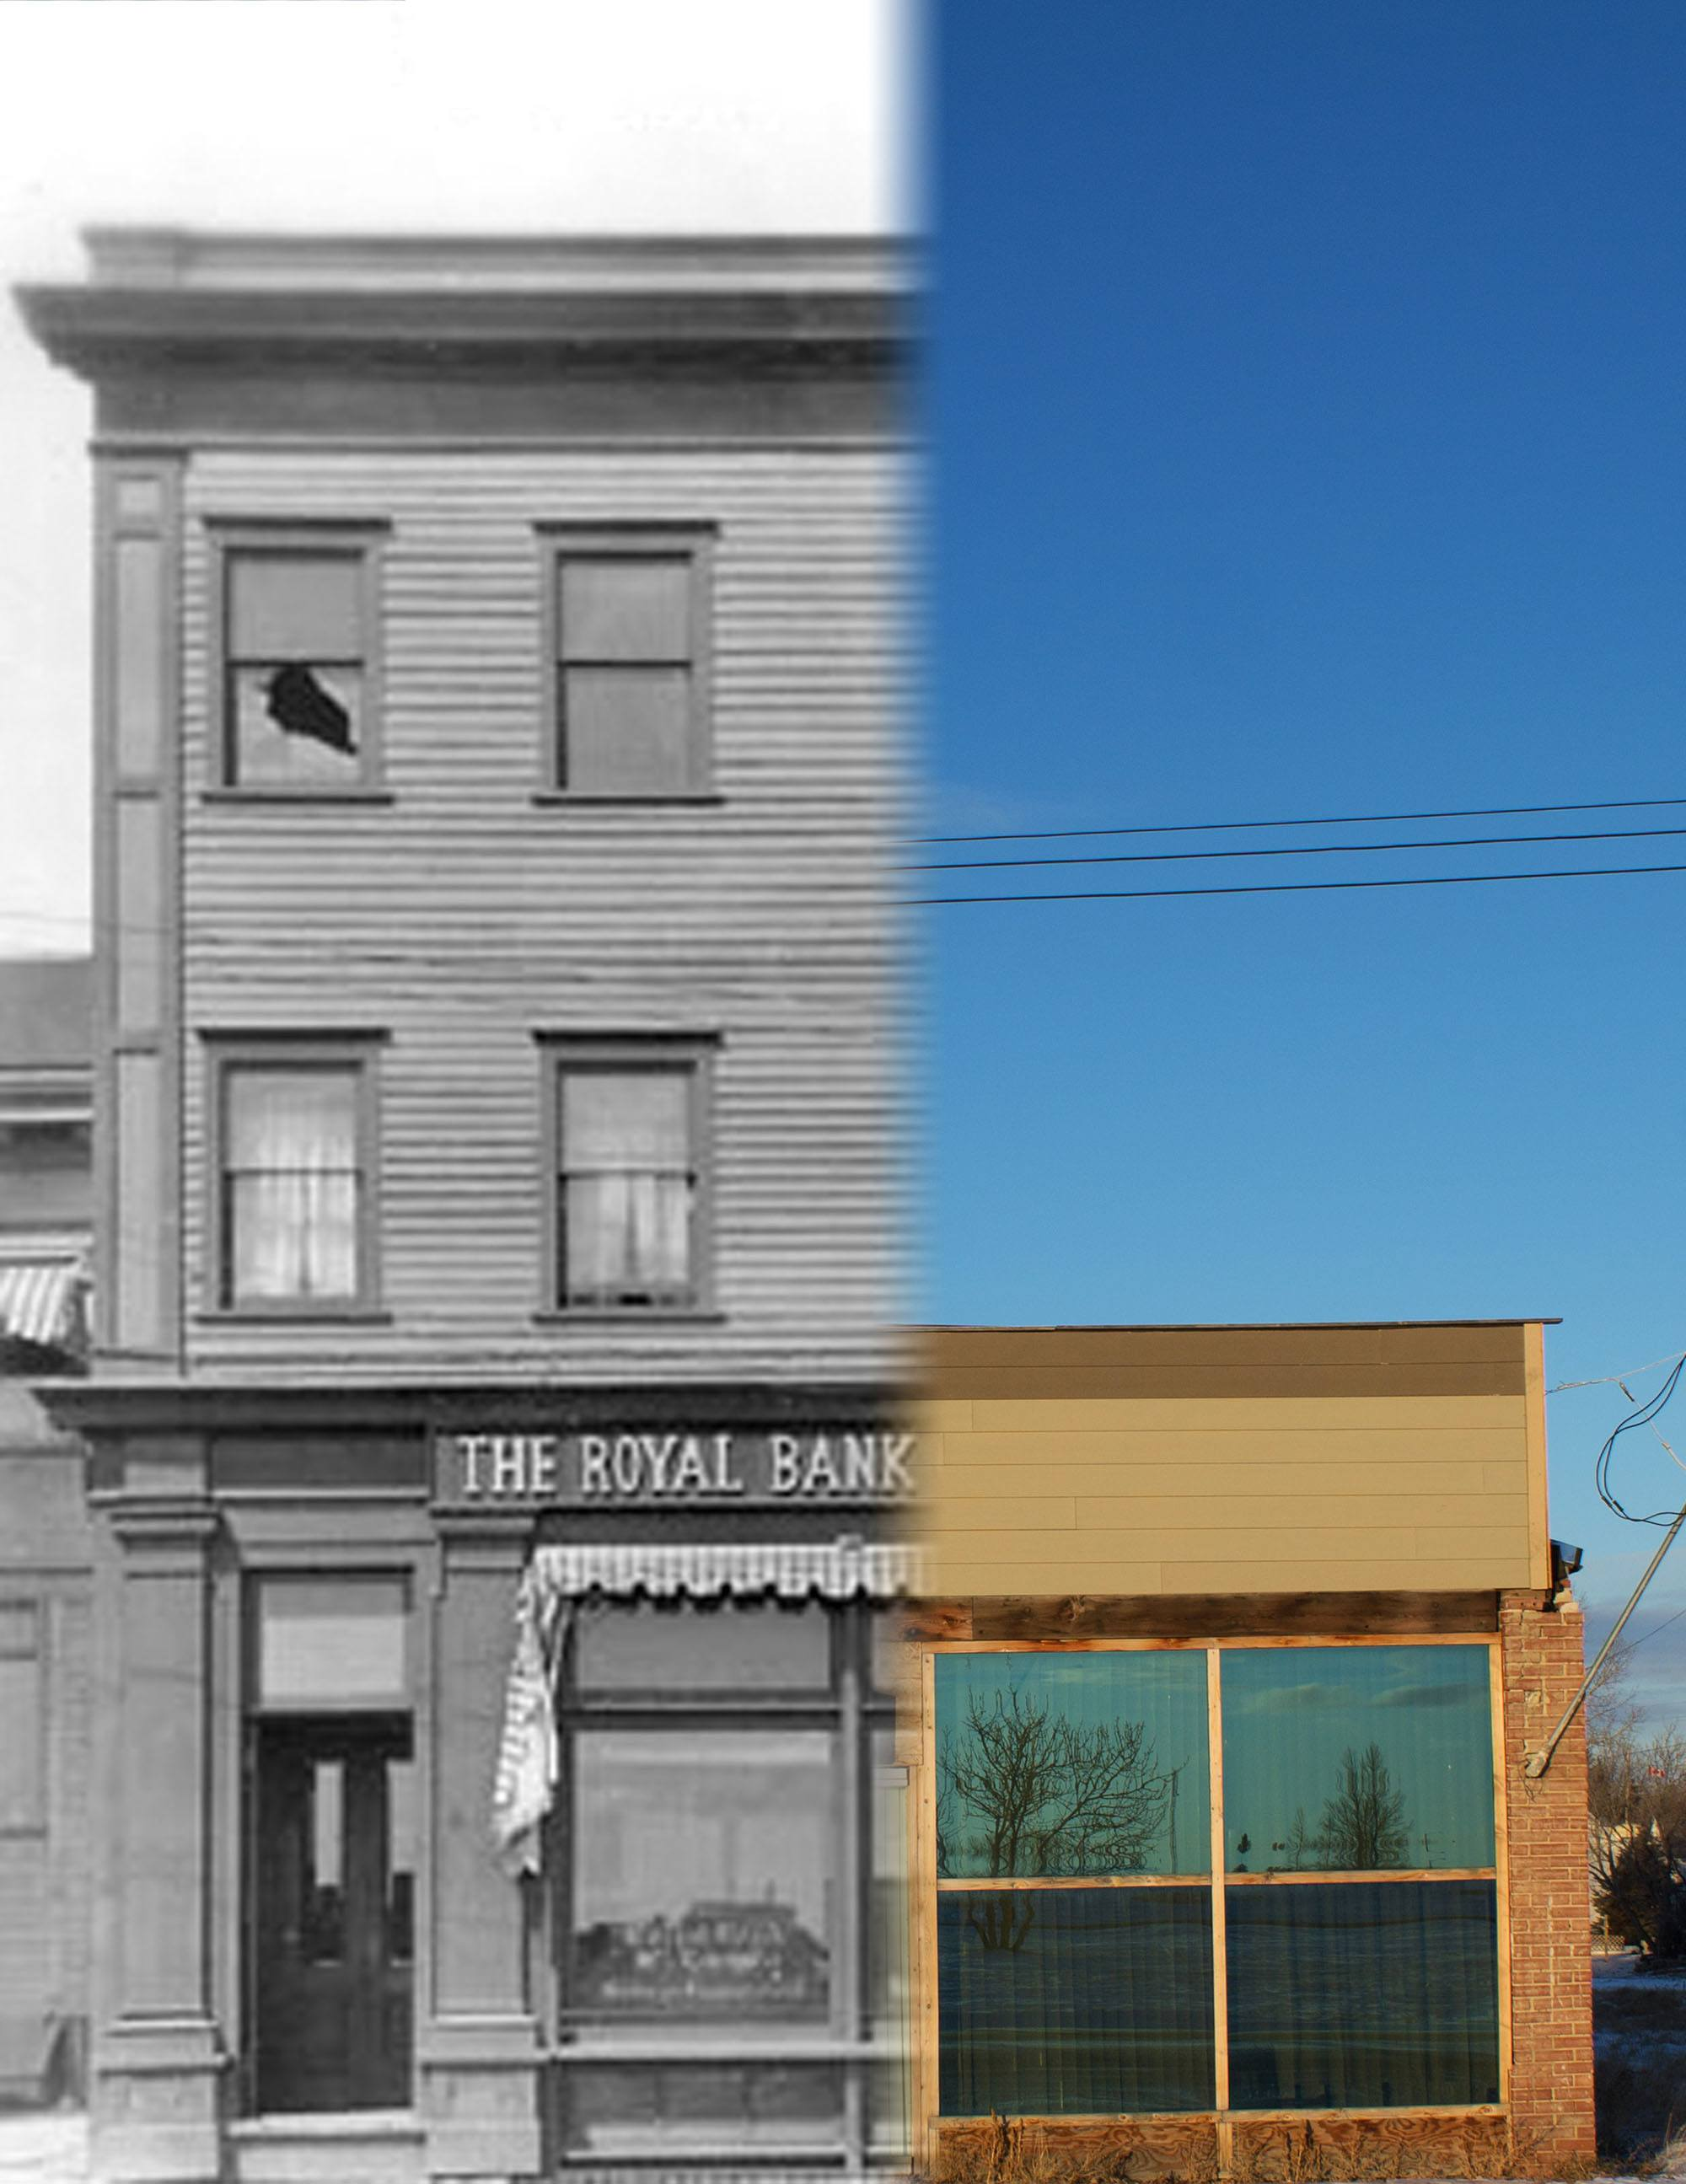 The Royal Bank of Canada in Gleichen in 1910 (Glenbow Museum and Archives/On This Spot)